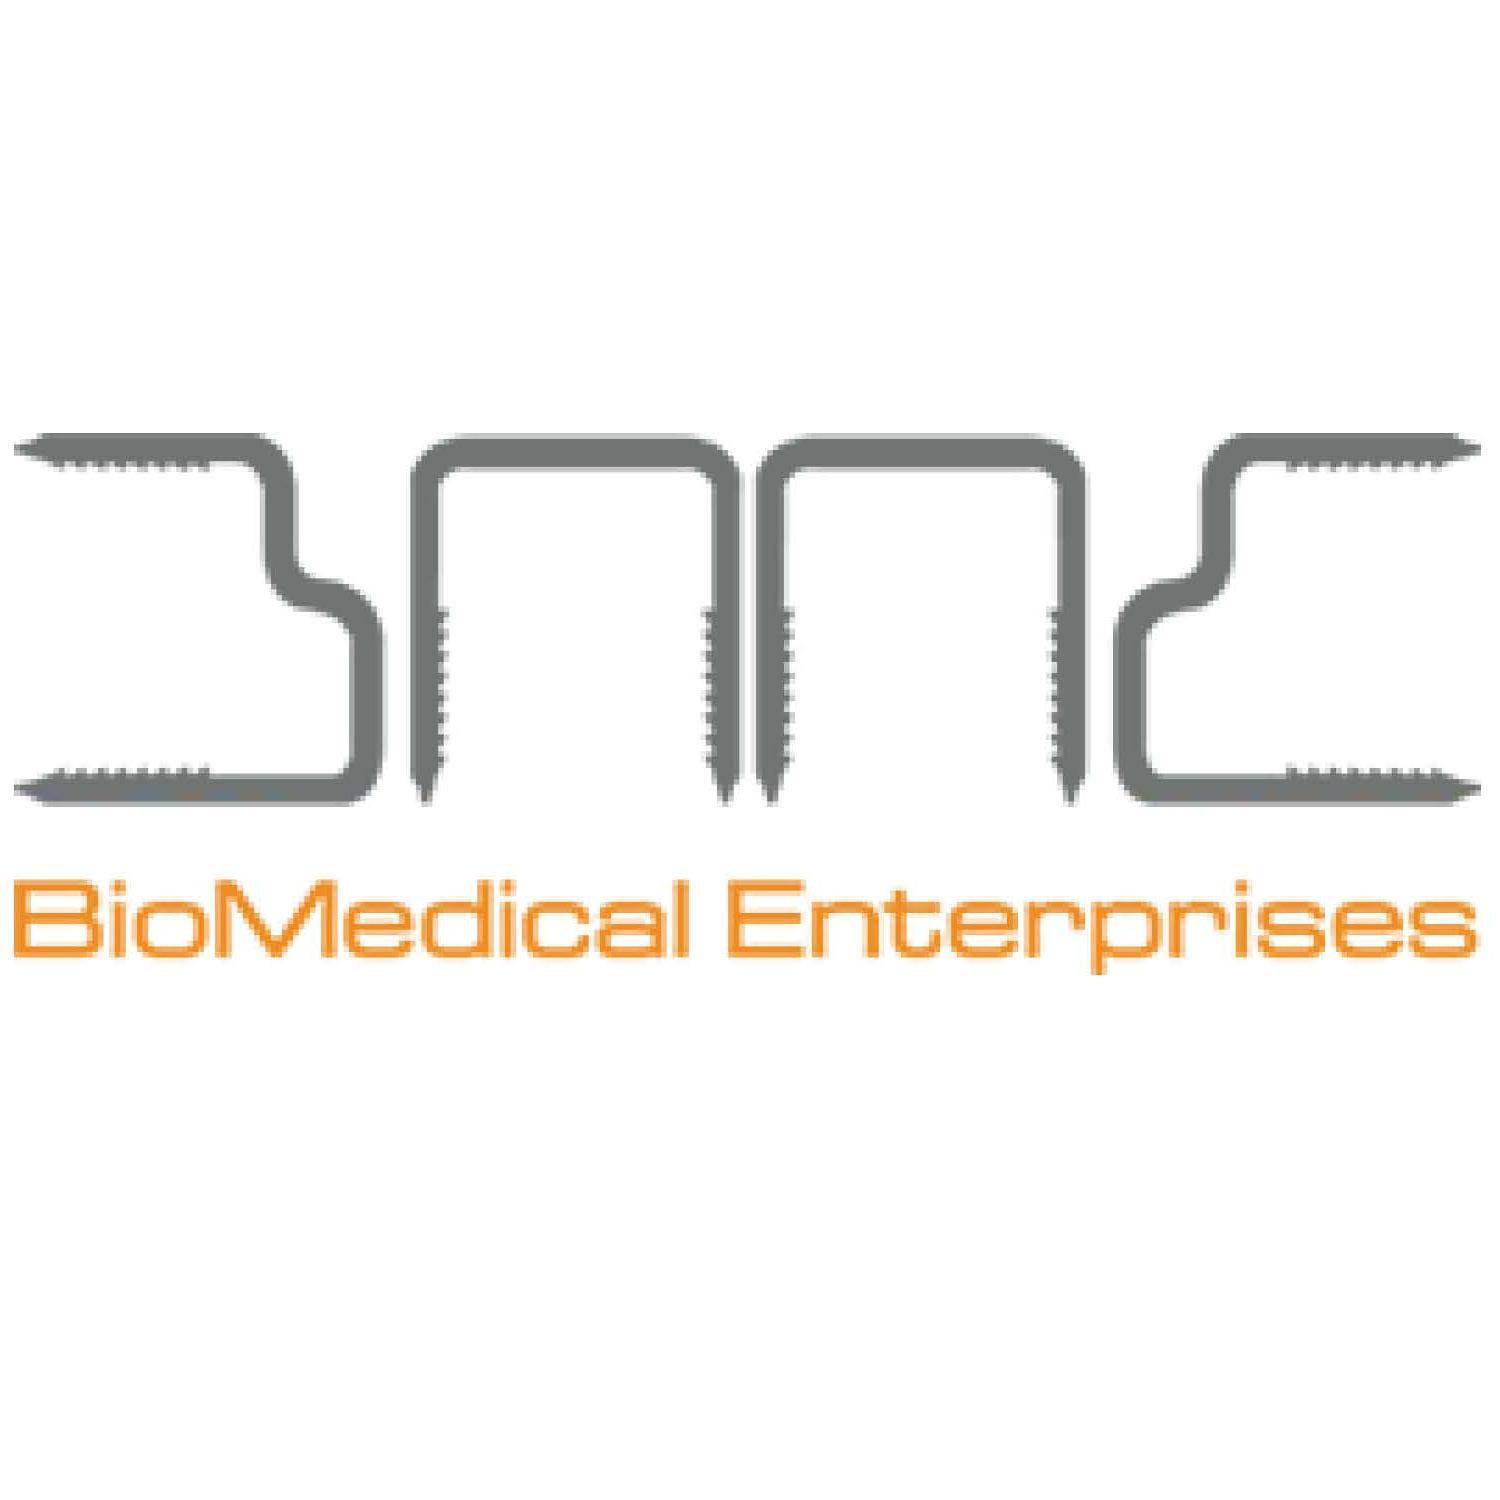 BioMedical Enterprises